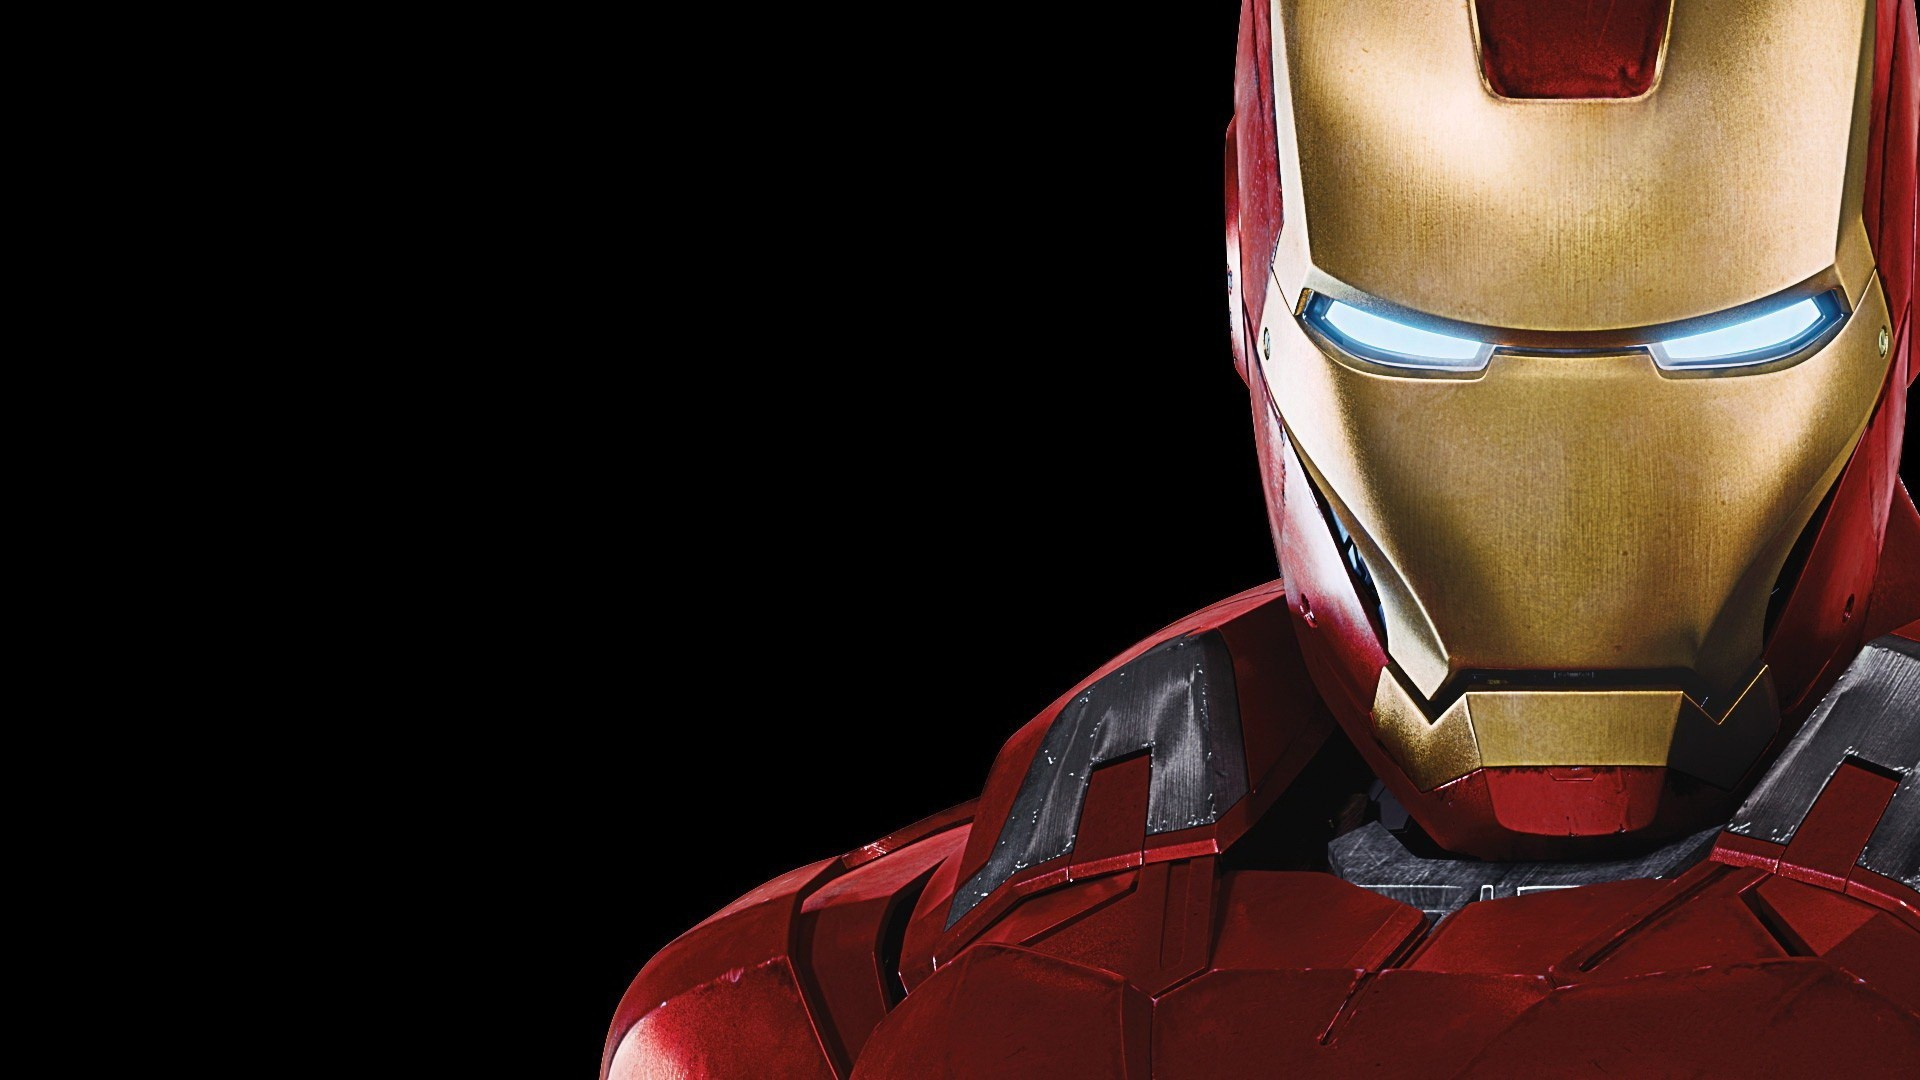 Iron Man Wallpaper 1 Download Free High Resolution Backgrounds For